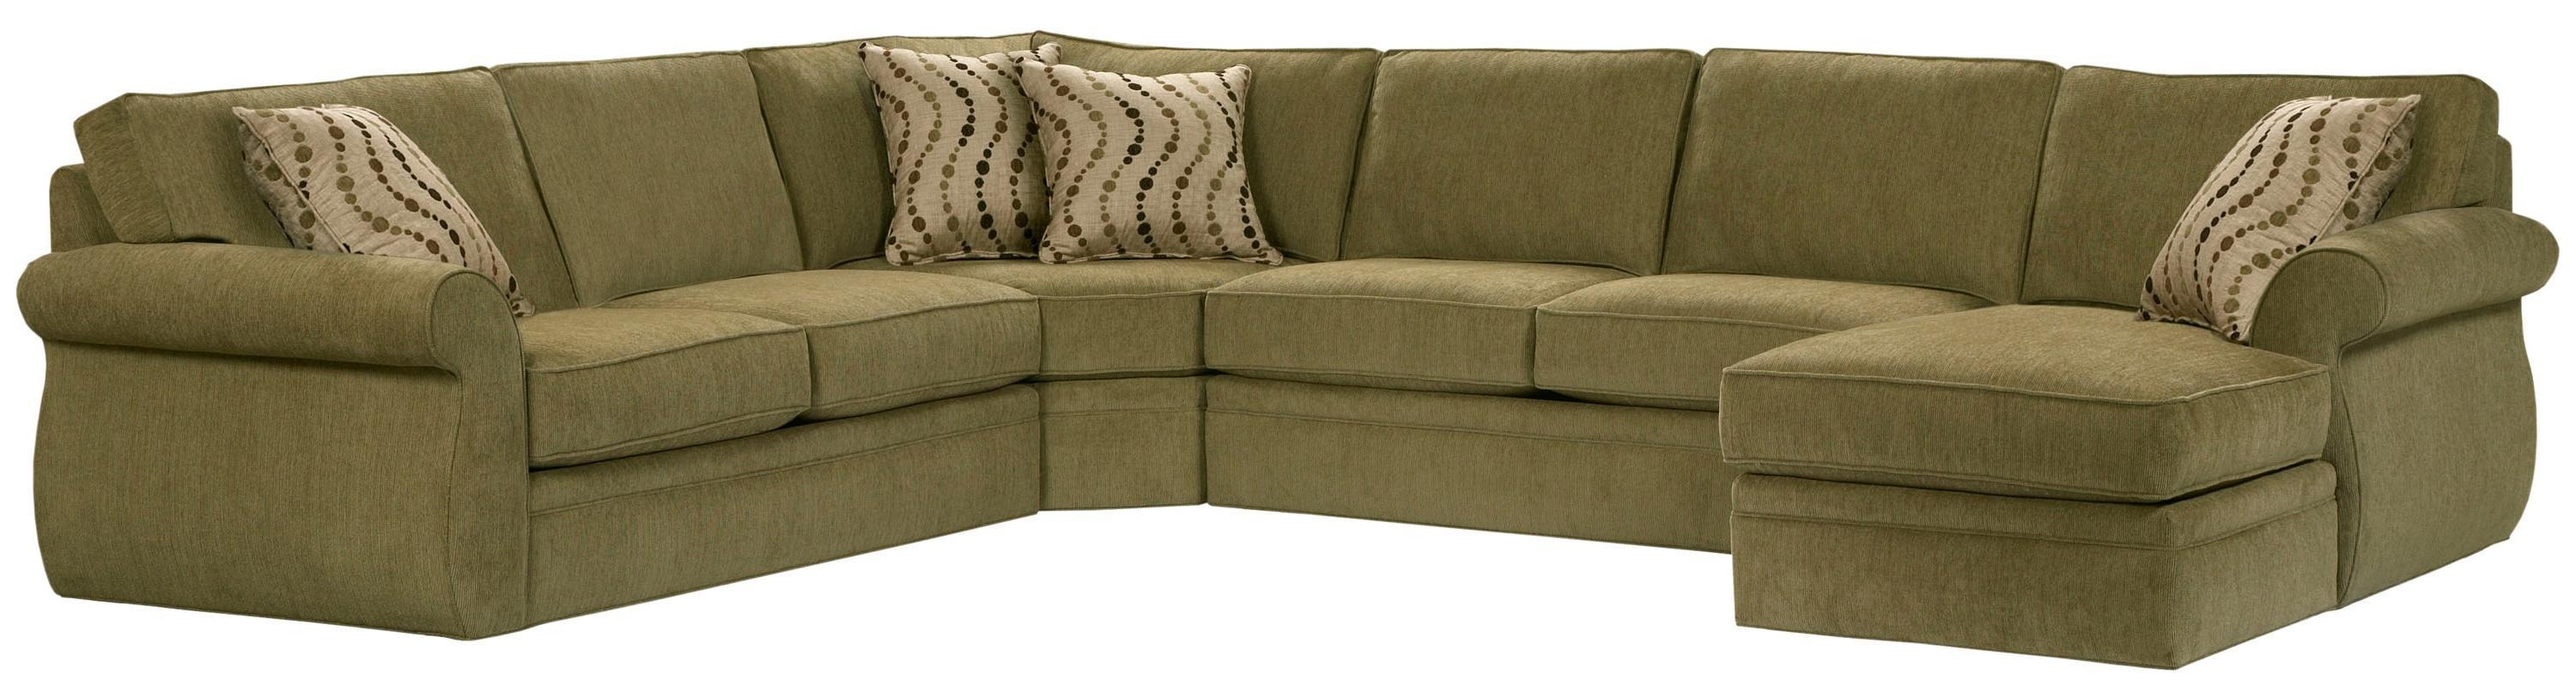 Broyhill Furniture Veronica Right Arm Facing Customizable Chaise Regarding Broyhill Reclining Sofas (Image 6 of 20)